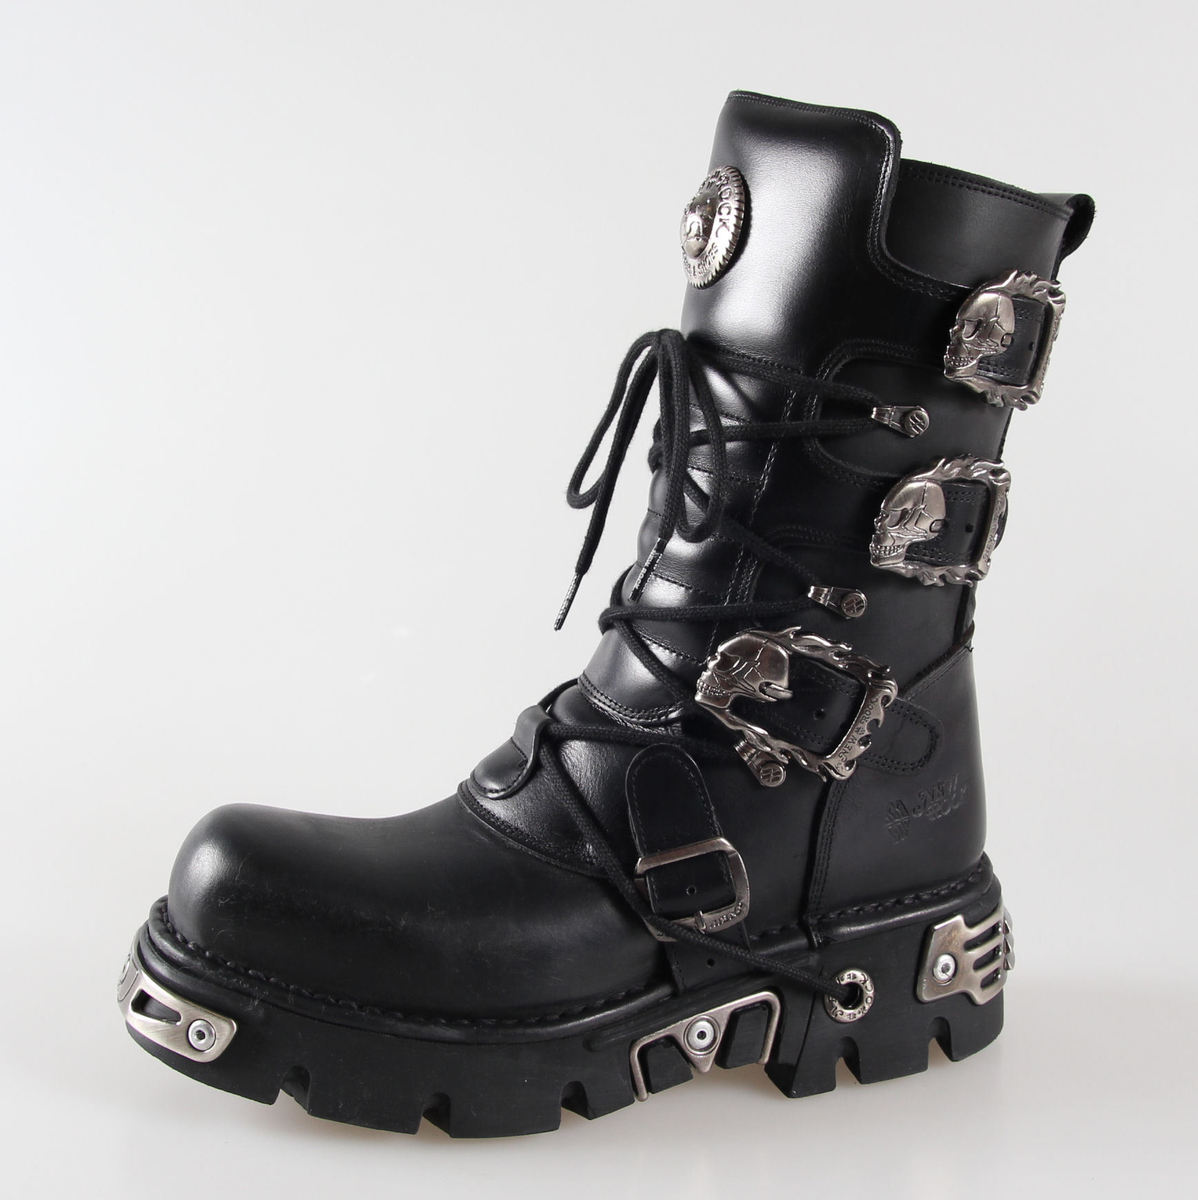 Boty New rock - Metal Boots (391-S1) Black - N-8-04-700-00